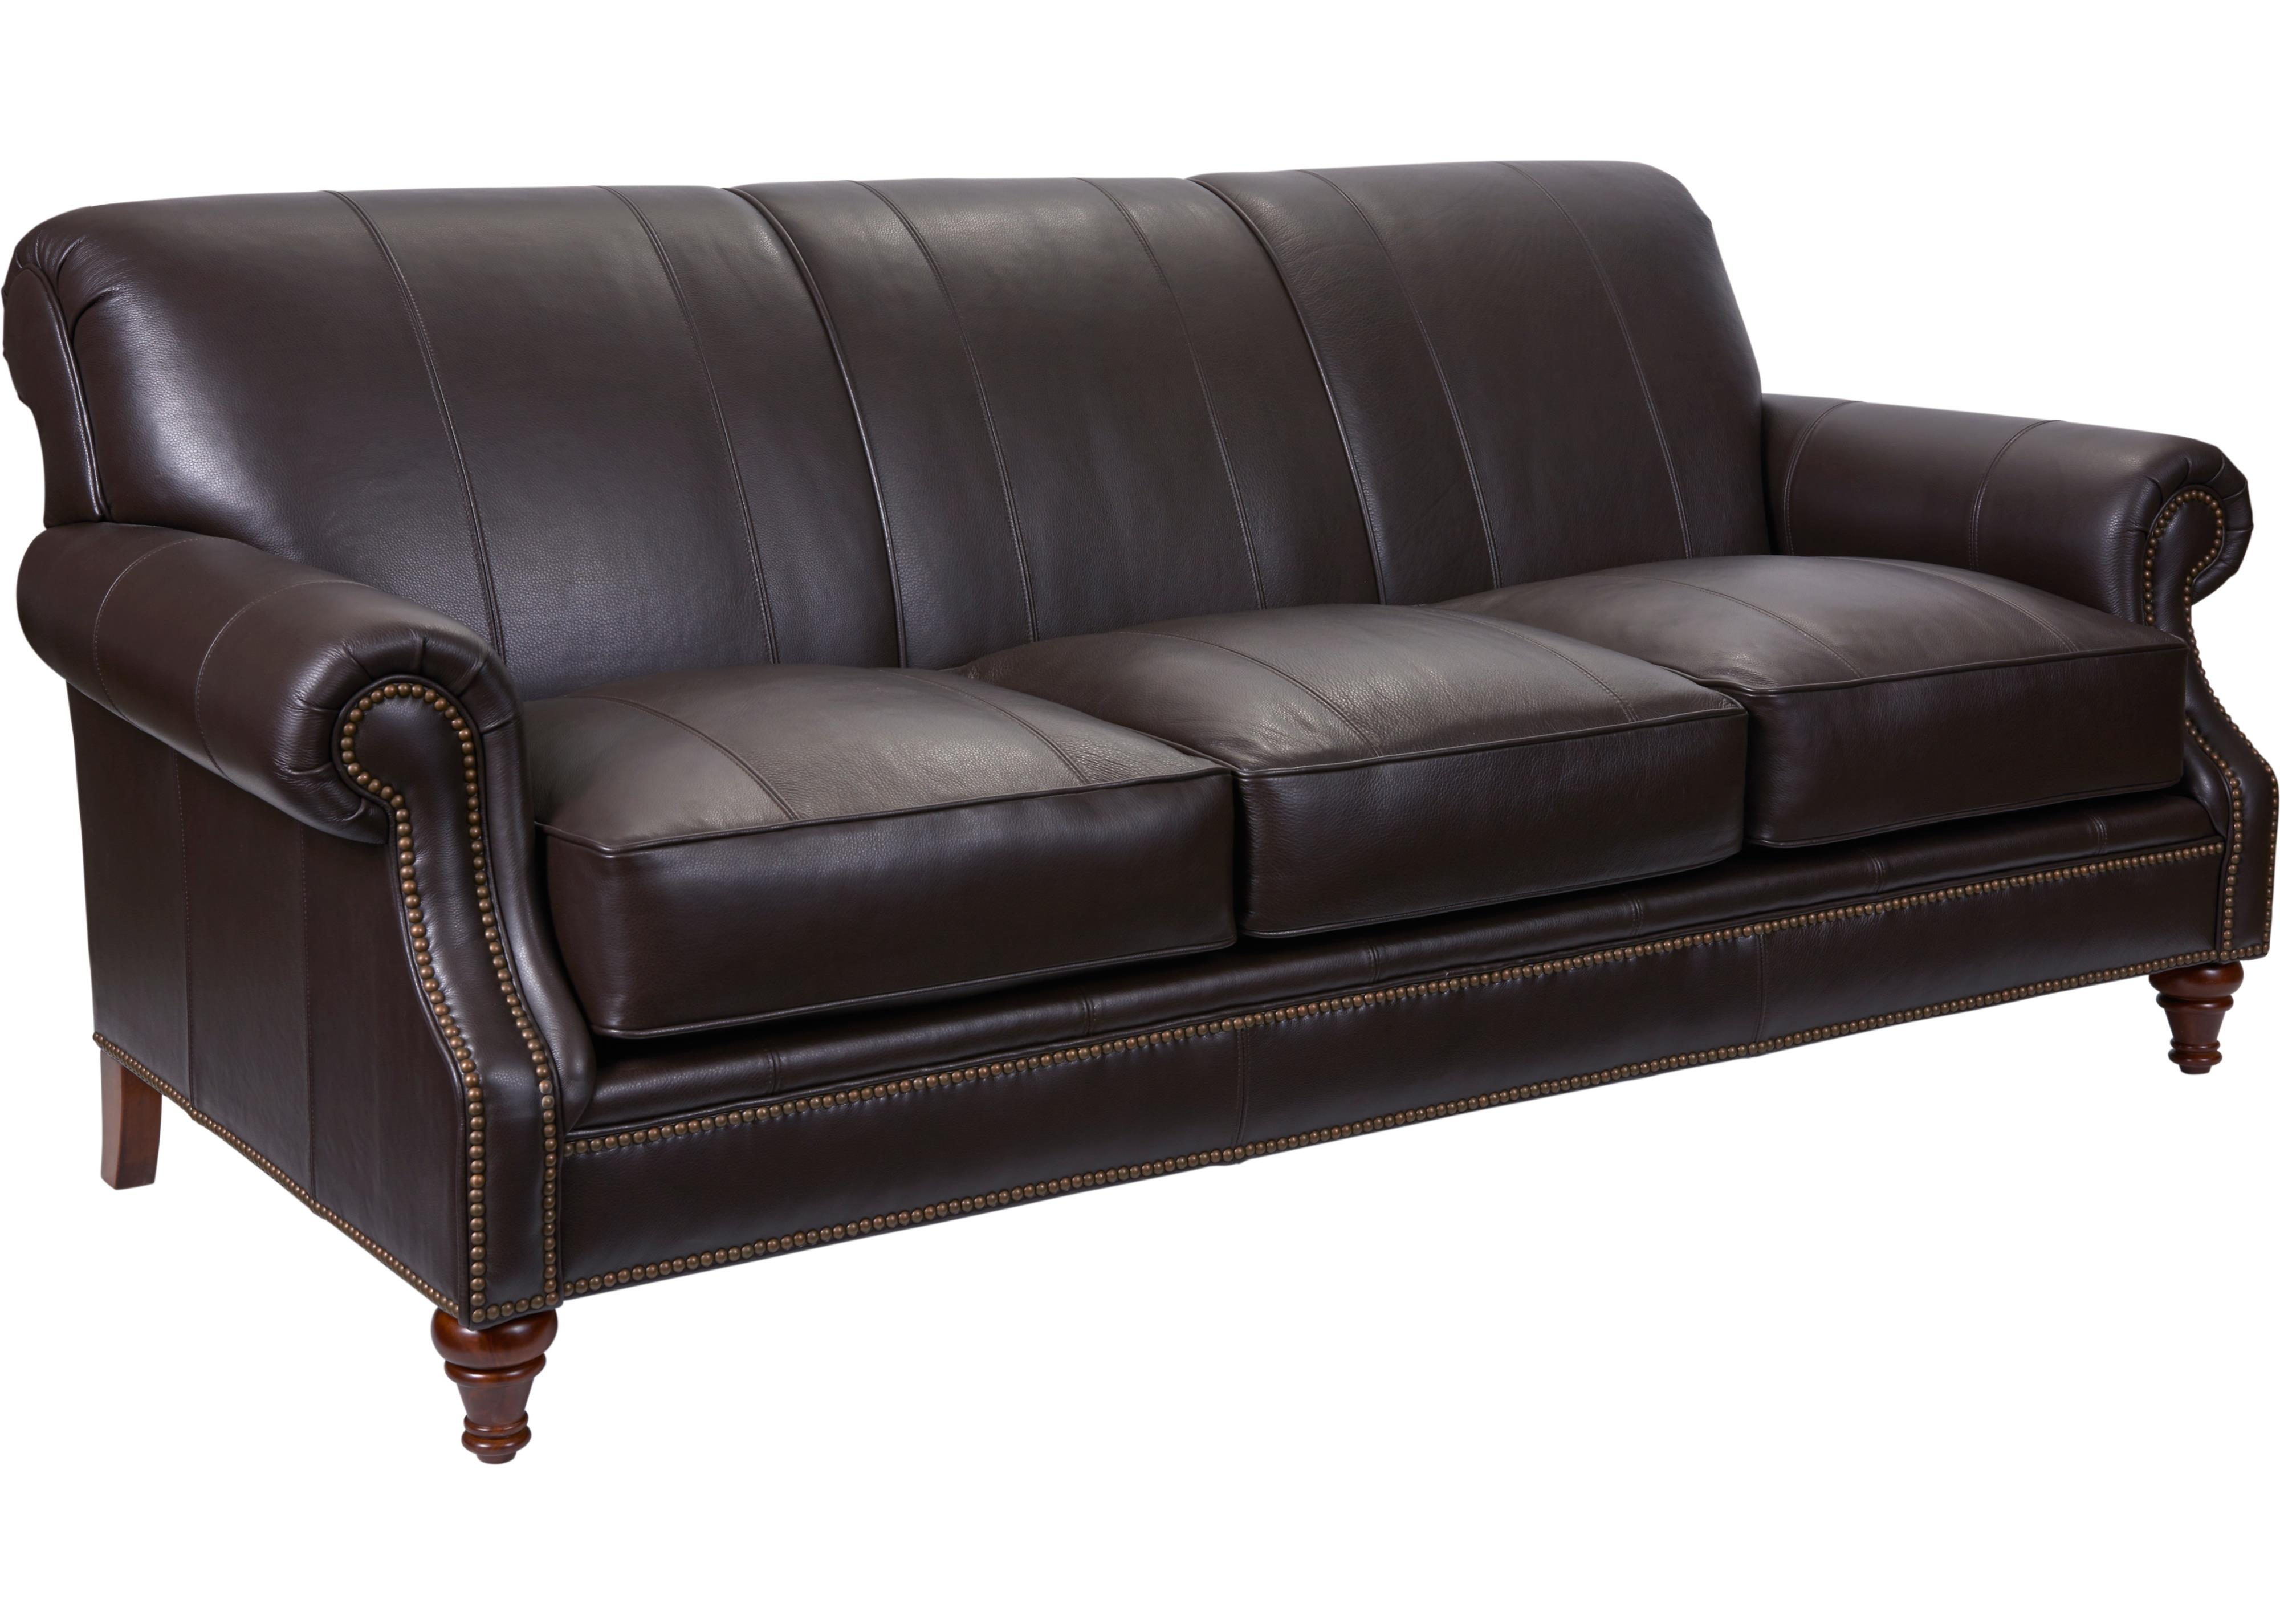 Broyhill furniture windsor sofa with rolled arms knight for Broyhill chaise lounge cushions